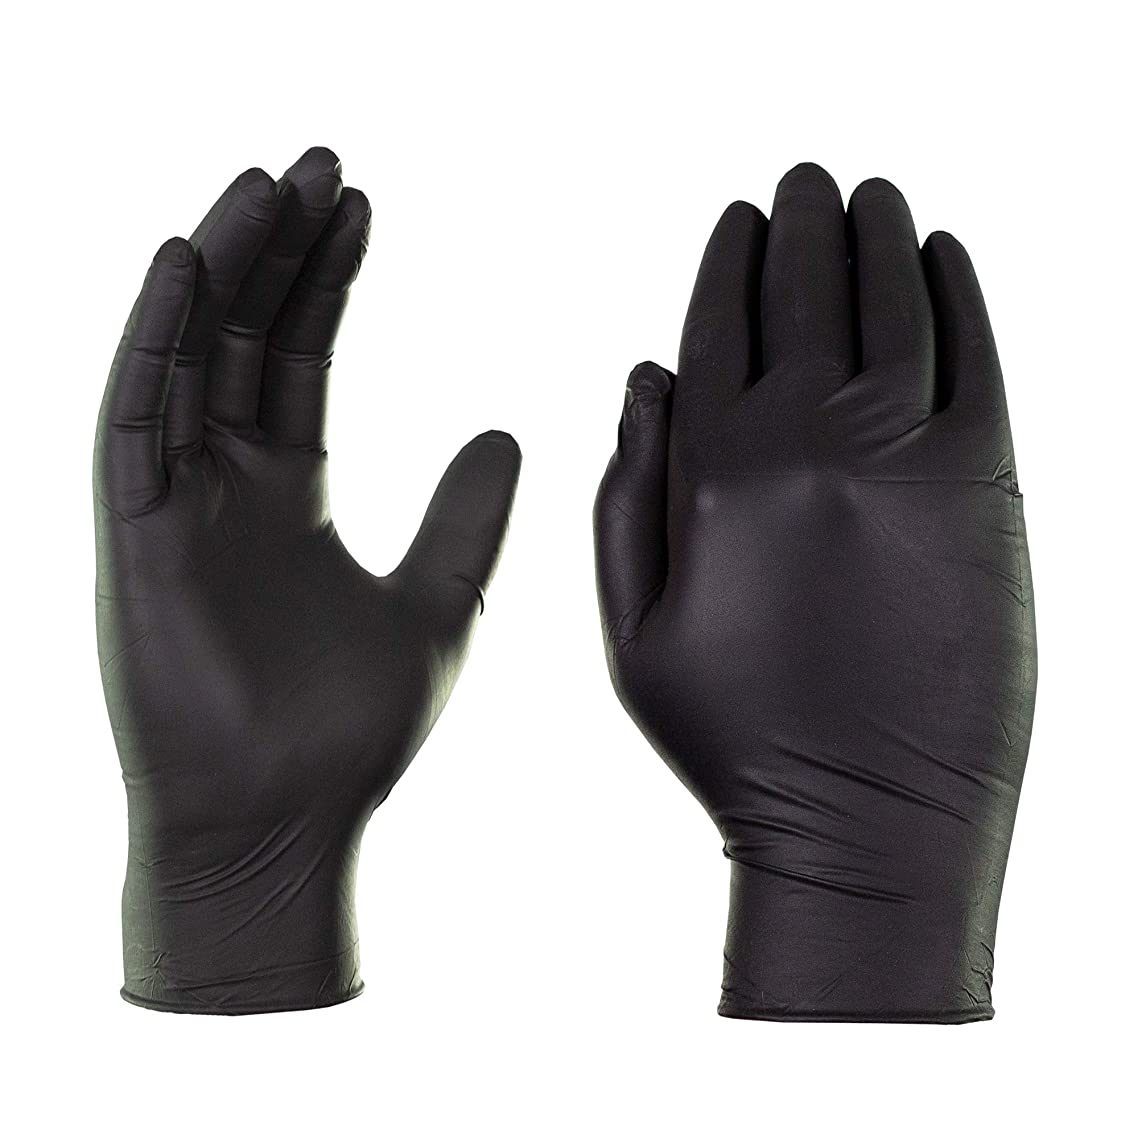 AMMEX Black Nitrile 4 Mil Disposable Gloves - Latex-Free, Exam, Powder-Free, Textured, Non-Sterile, XLarge, Case of 1000